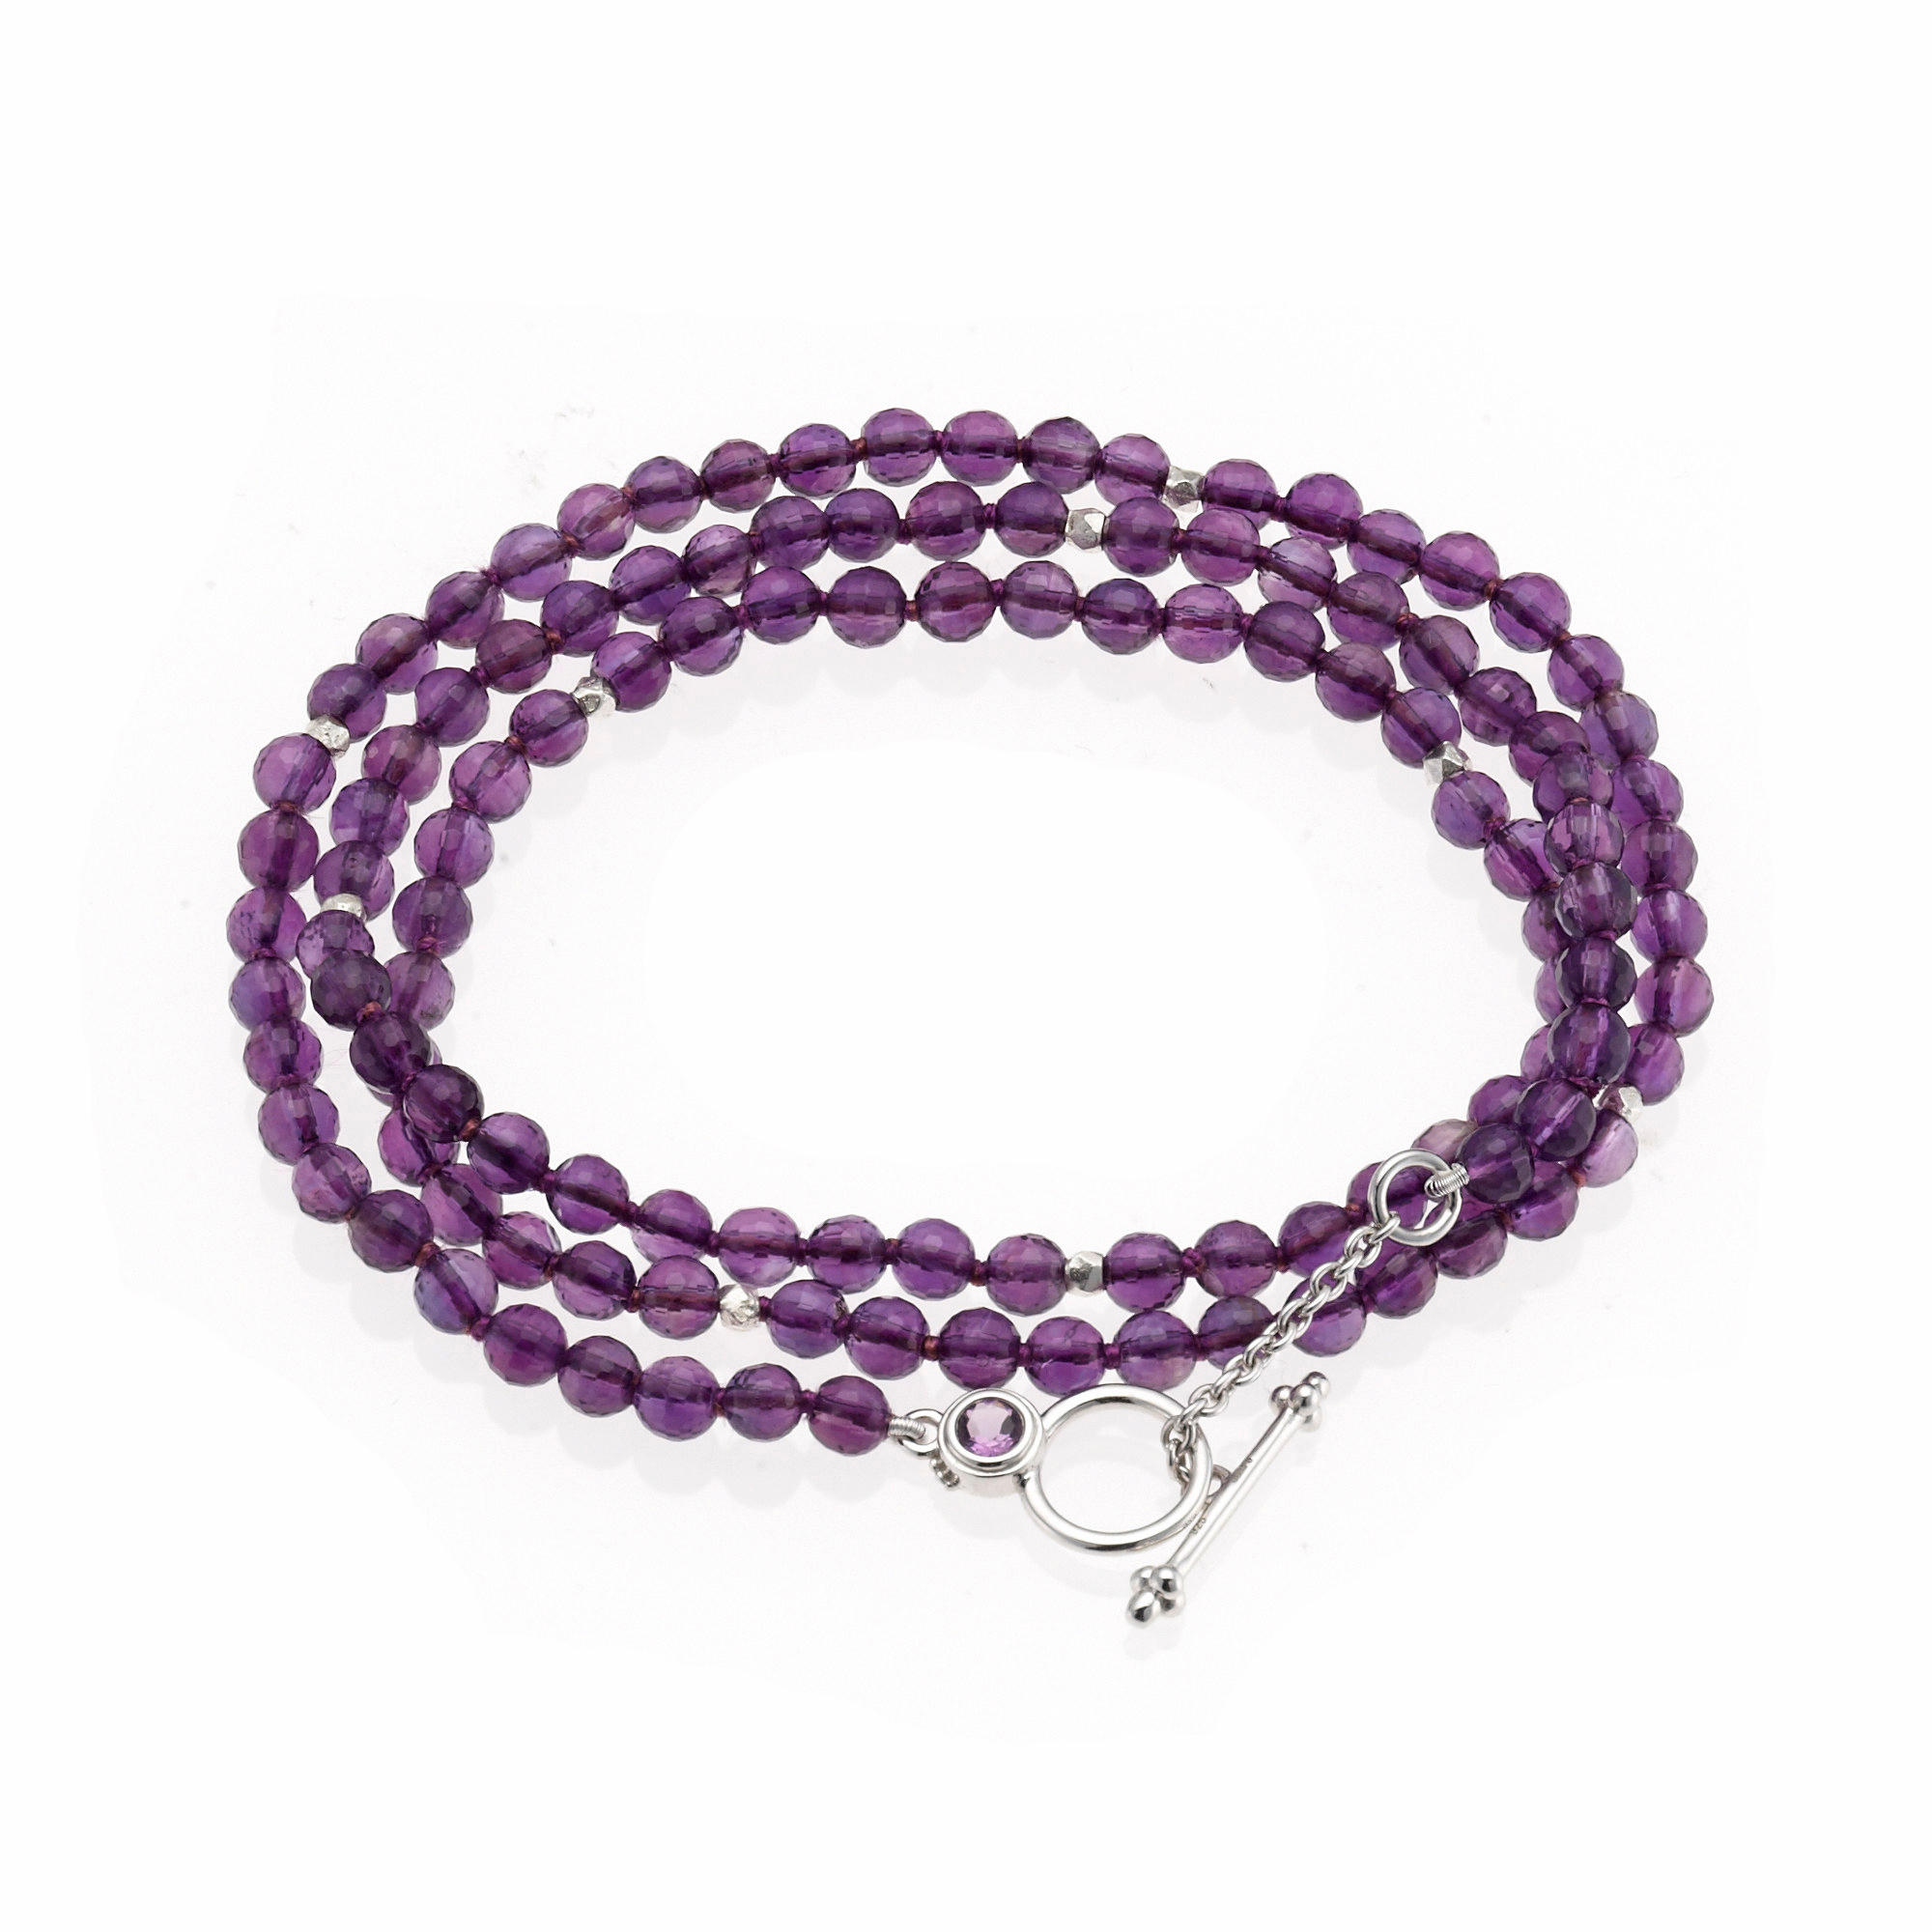 Gump's Faceted Amethyst Necklace/Wrap Bracelet With Amethyst Toggle Clasp